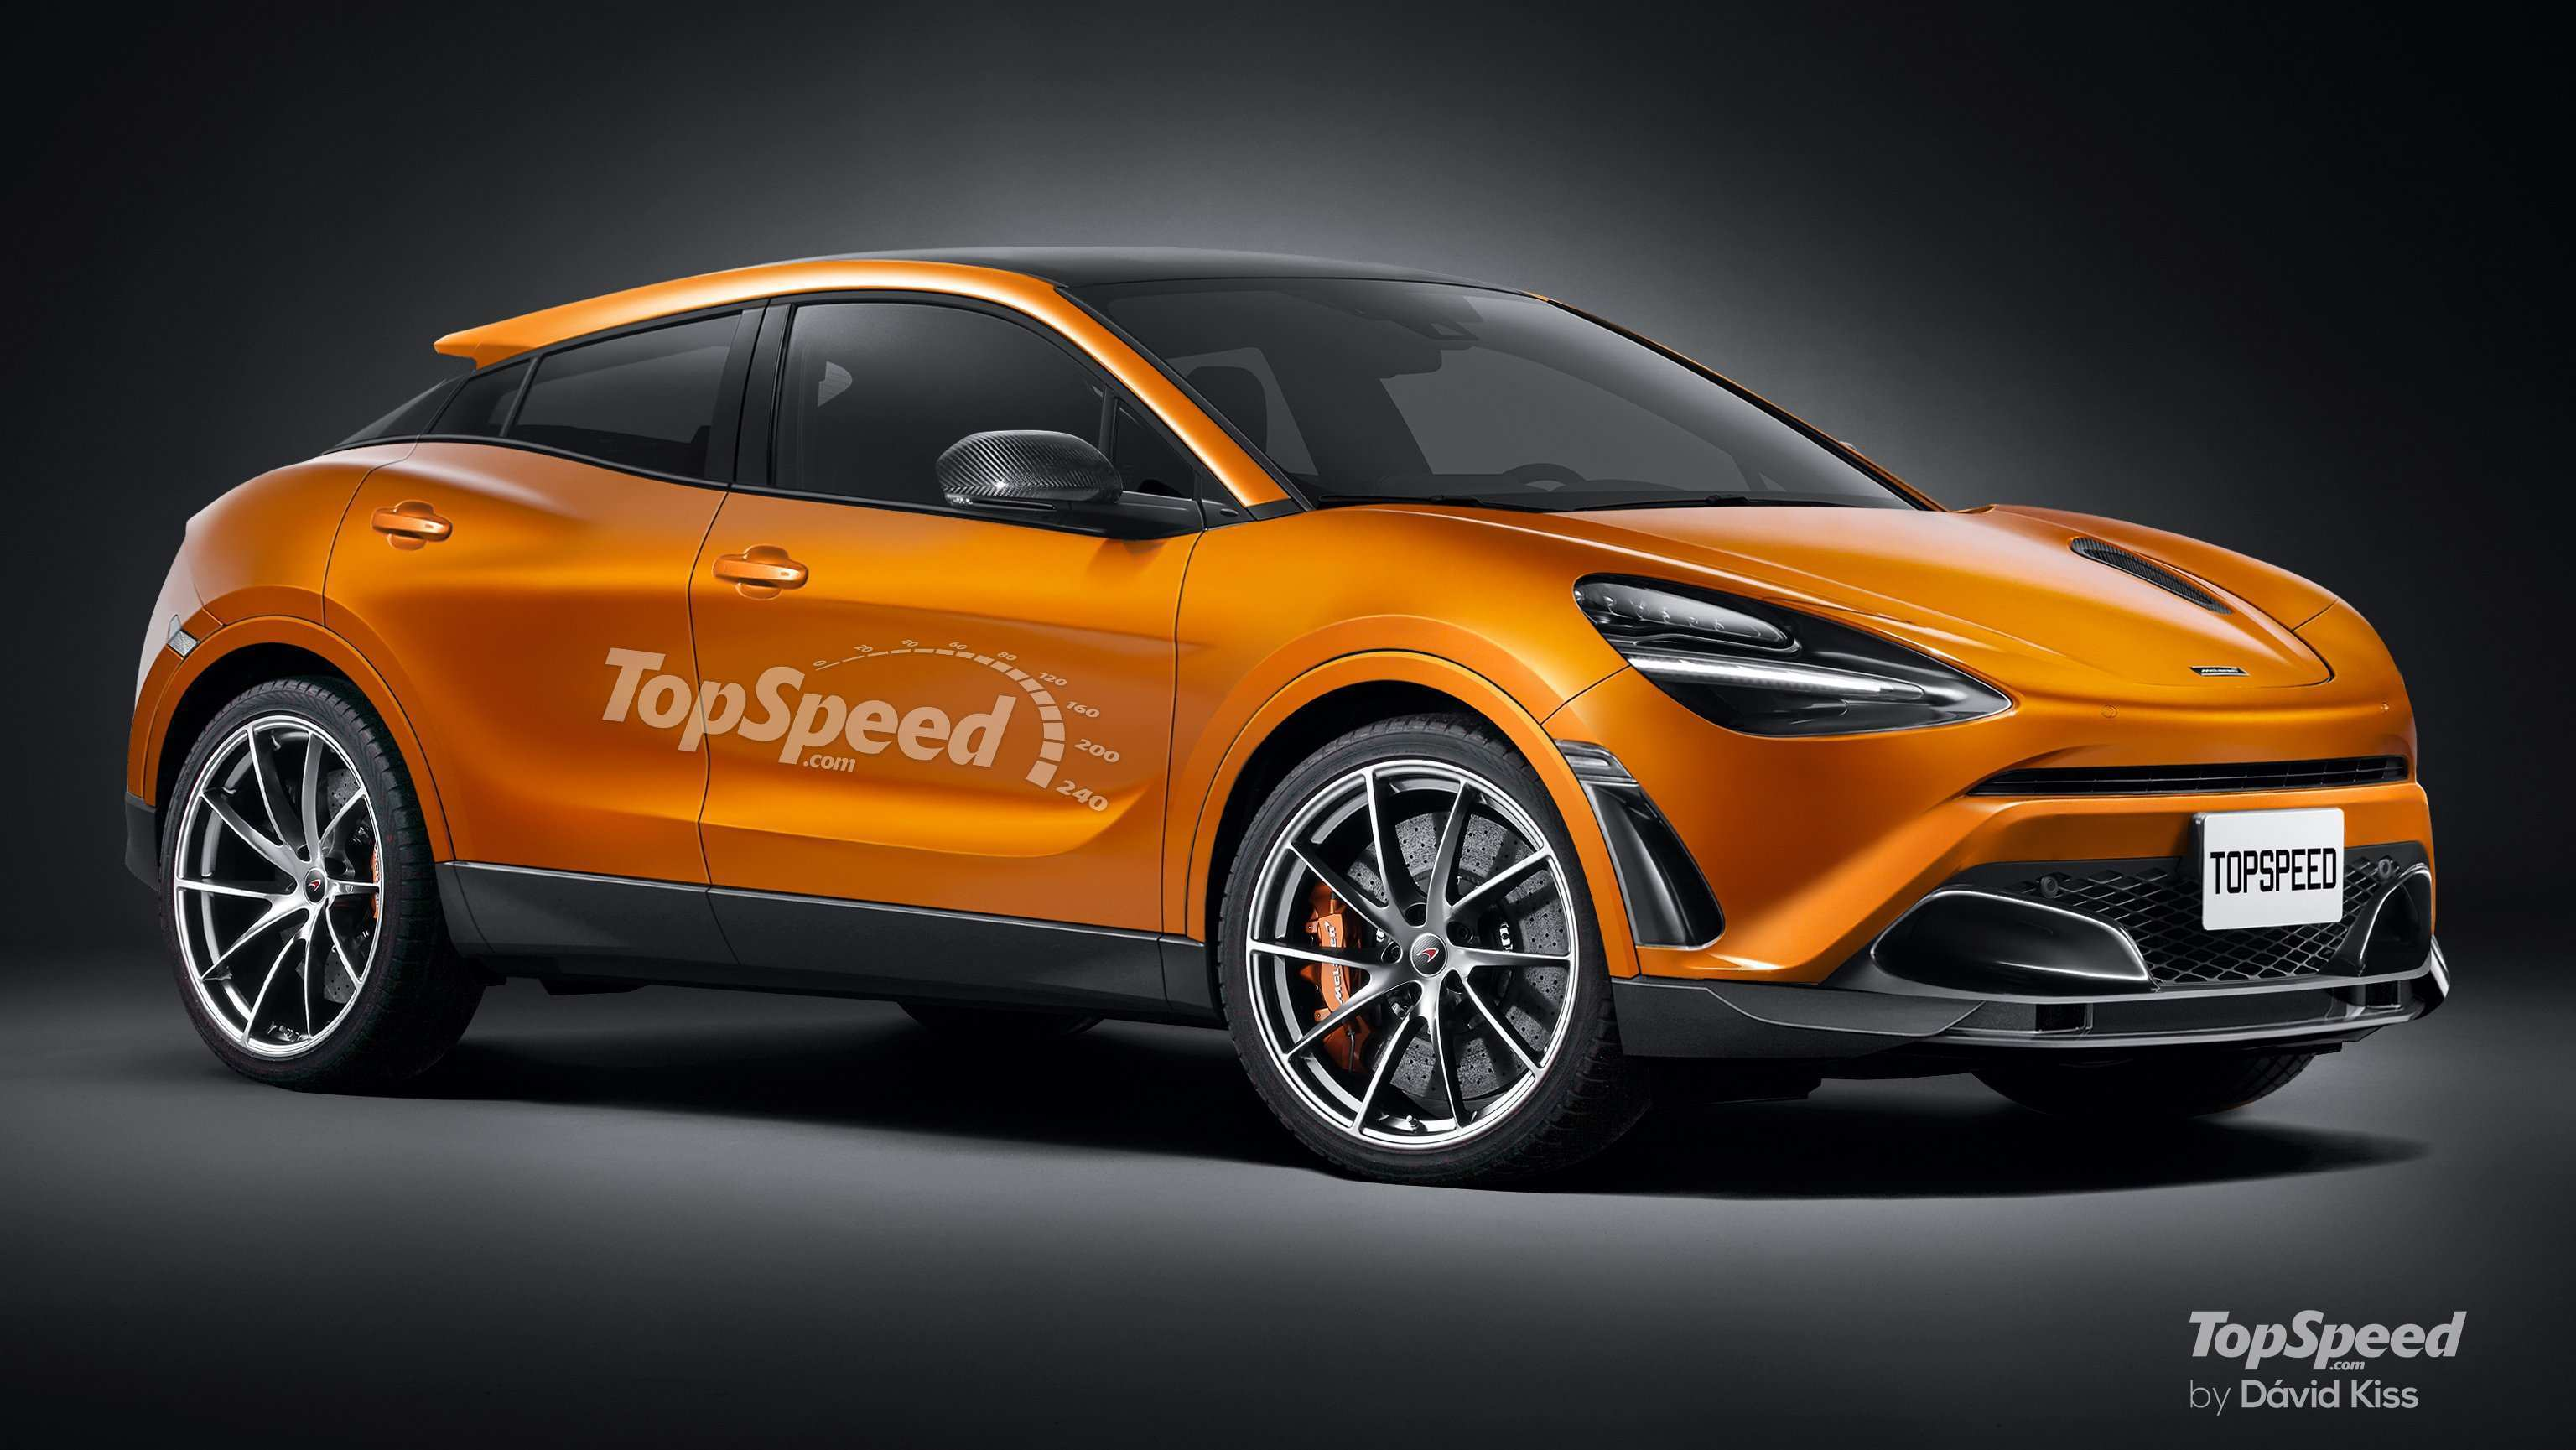 31 Concept of 2020 Mclaren Photos for 2020 Mclaren